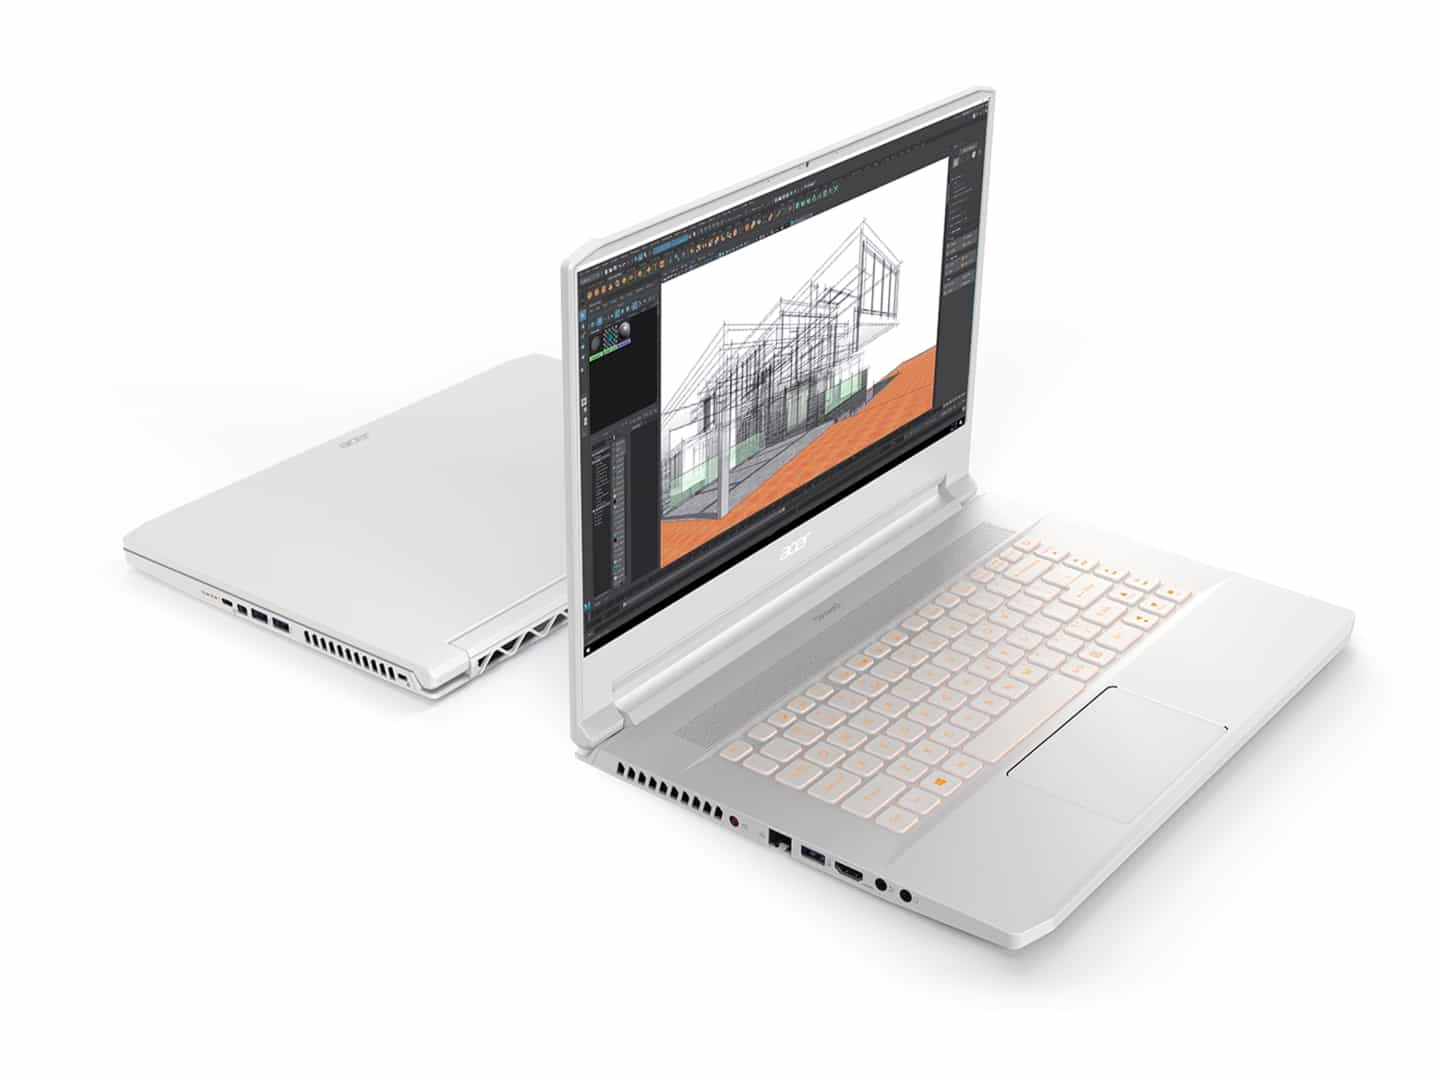 Acer ConceptD 7 Pro 2